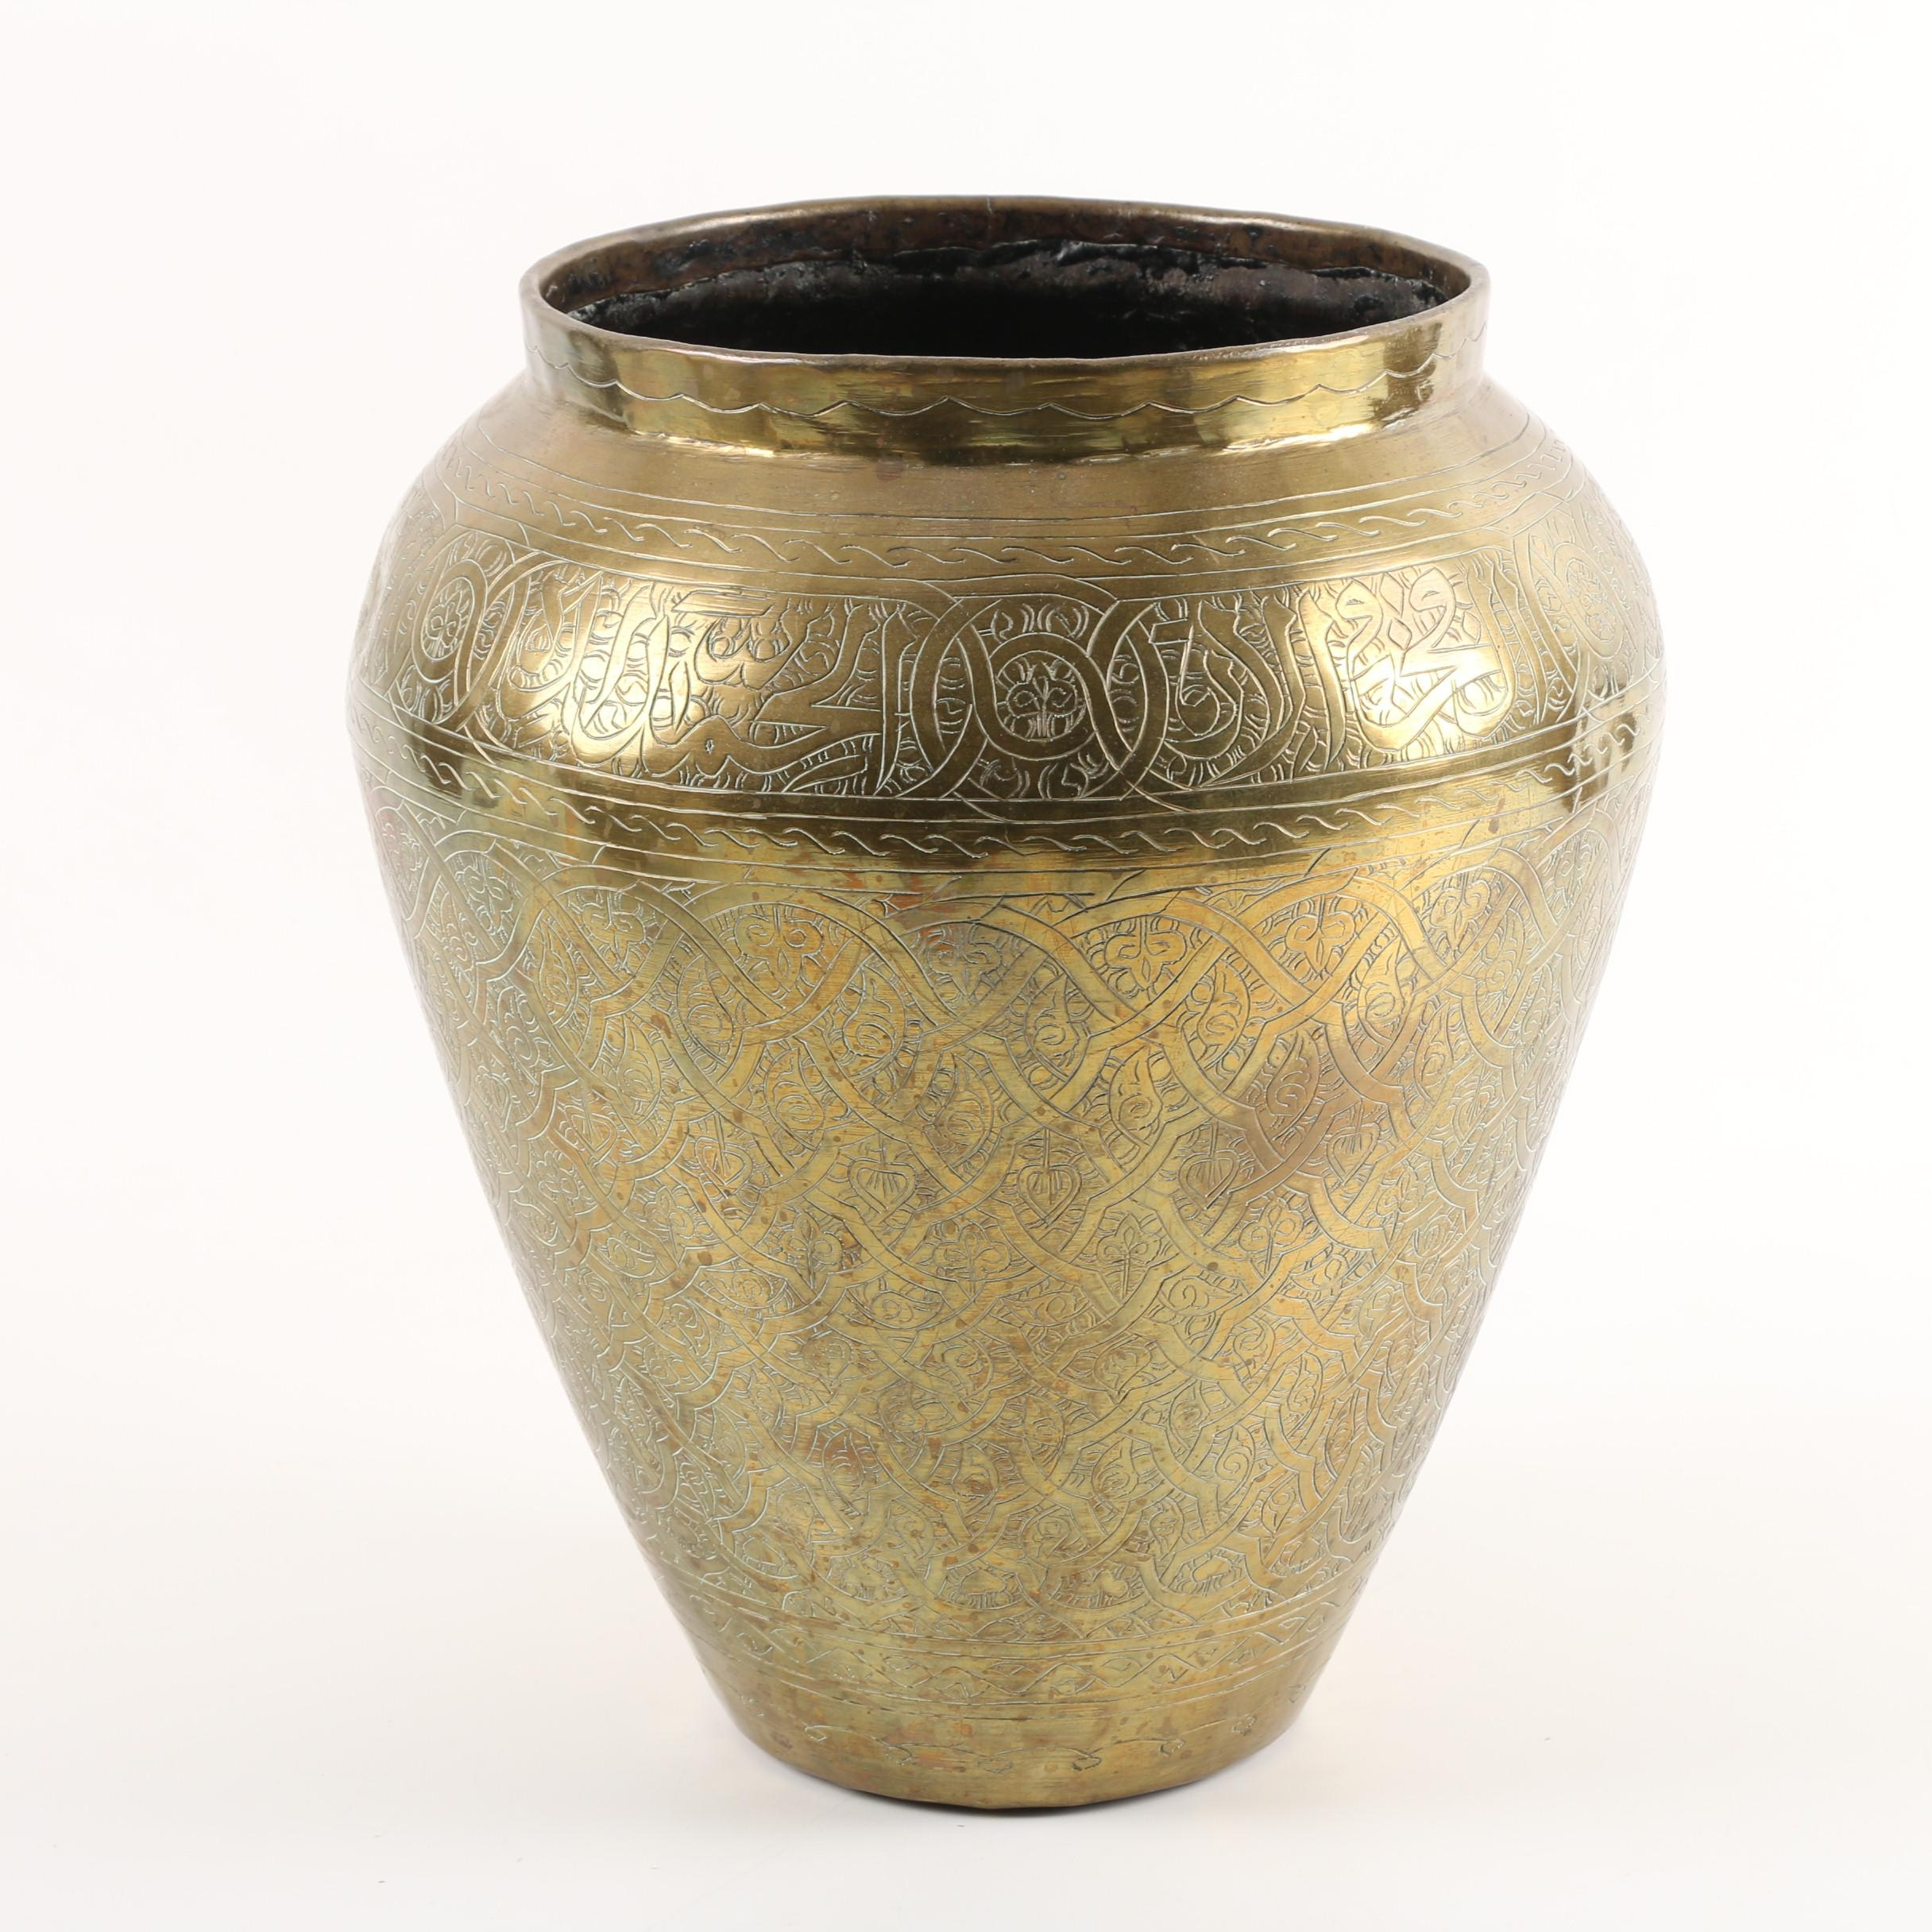 Middle Eastern Style Large Brass Vase with Chased Design